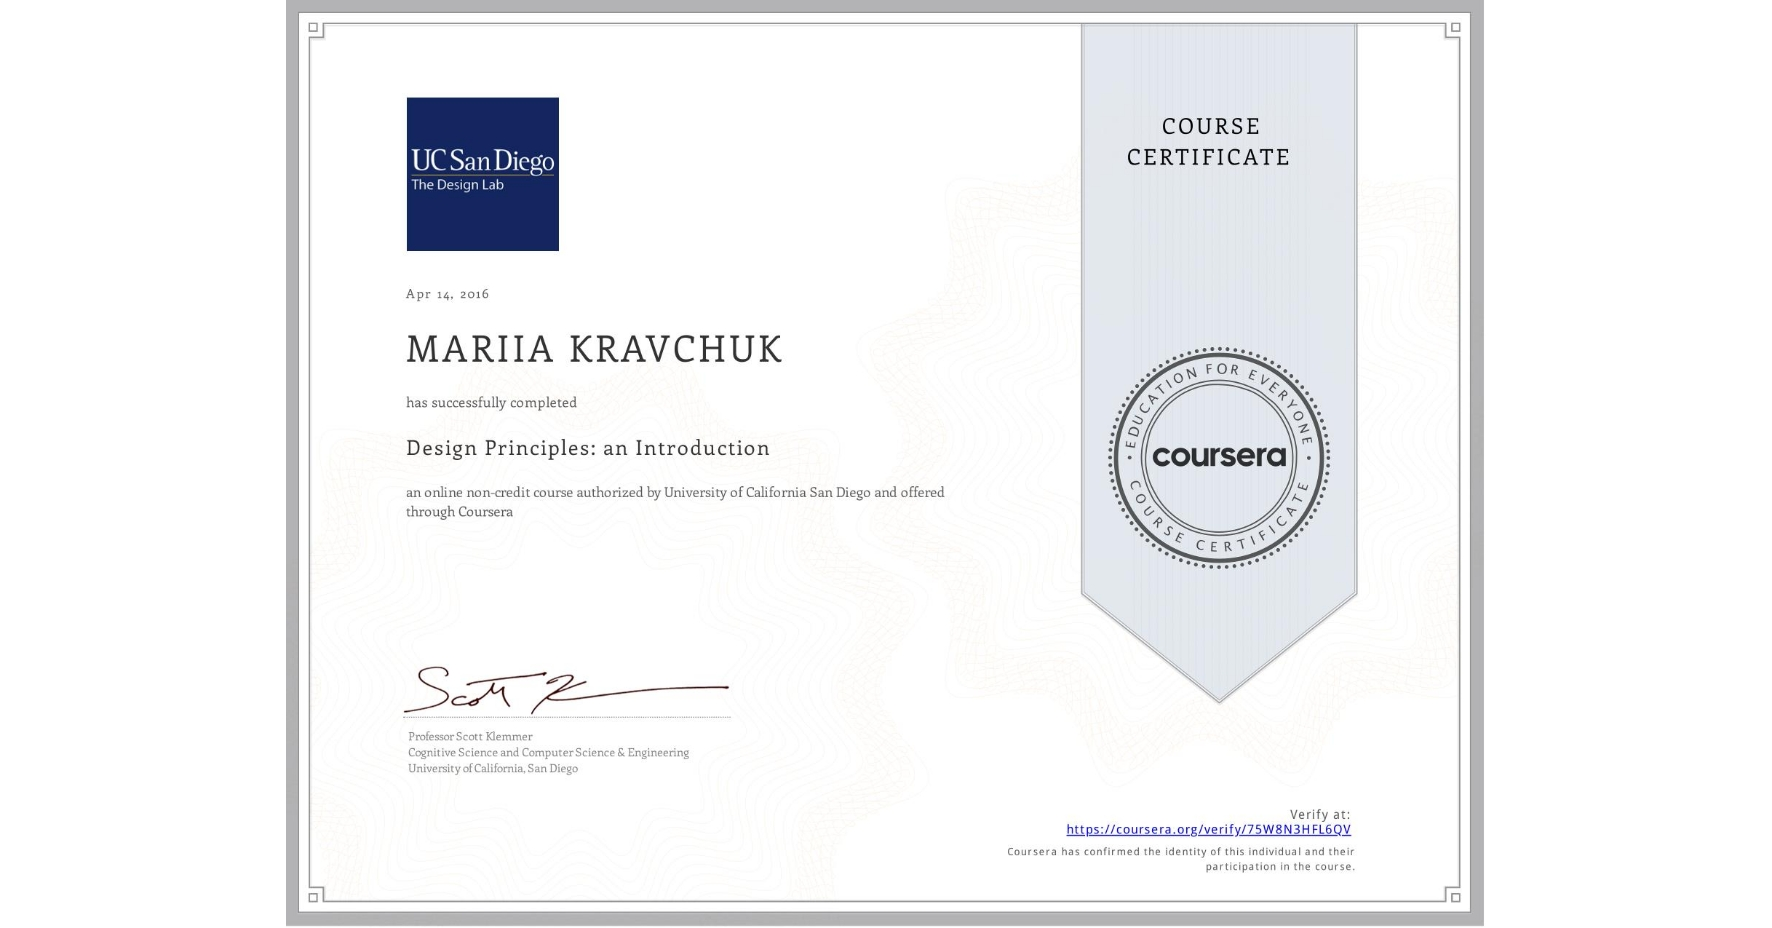 View certificate for MARIIA KRAVCHUK, Design Principles: an Introduction, an online non-credit course authorized by University of California San Diego and offered through Coursera